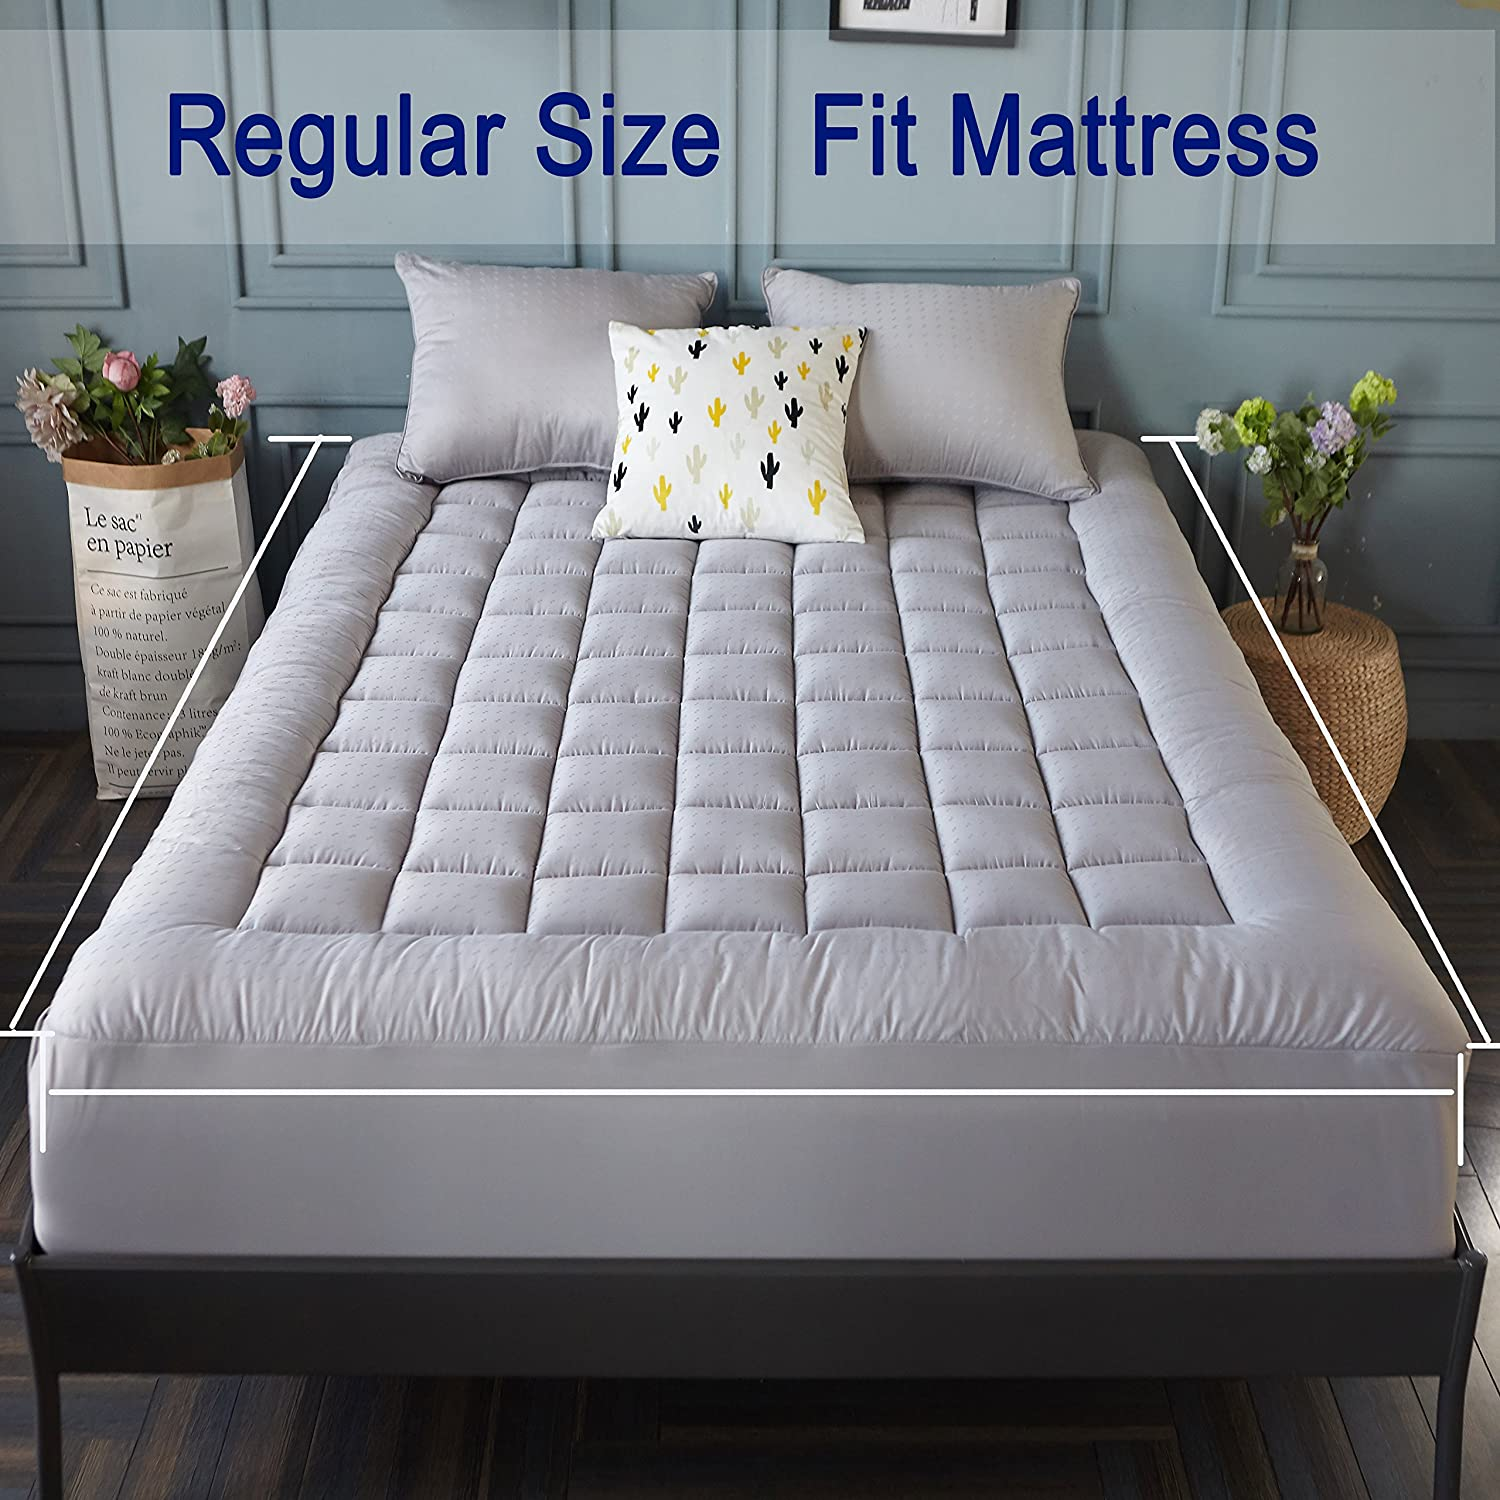 Mattress Pad Cover (King Size)- Cooling Mattress Topper